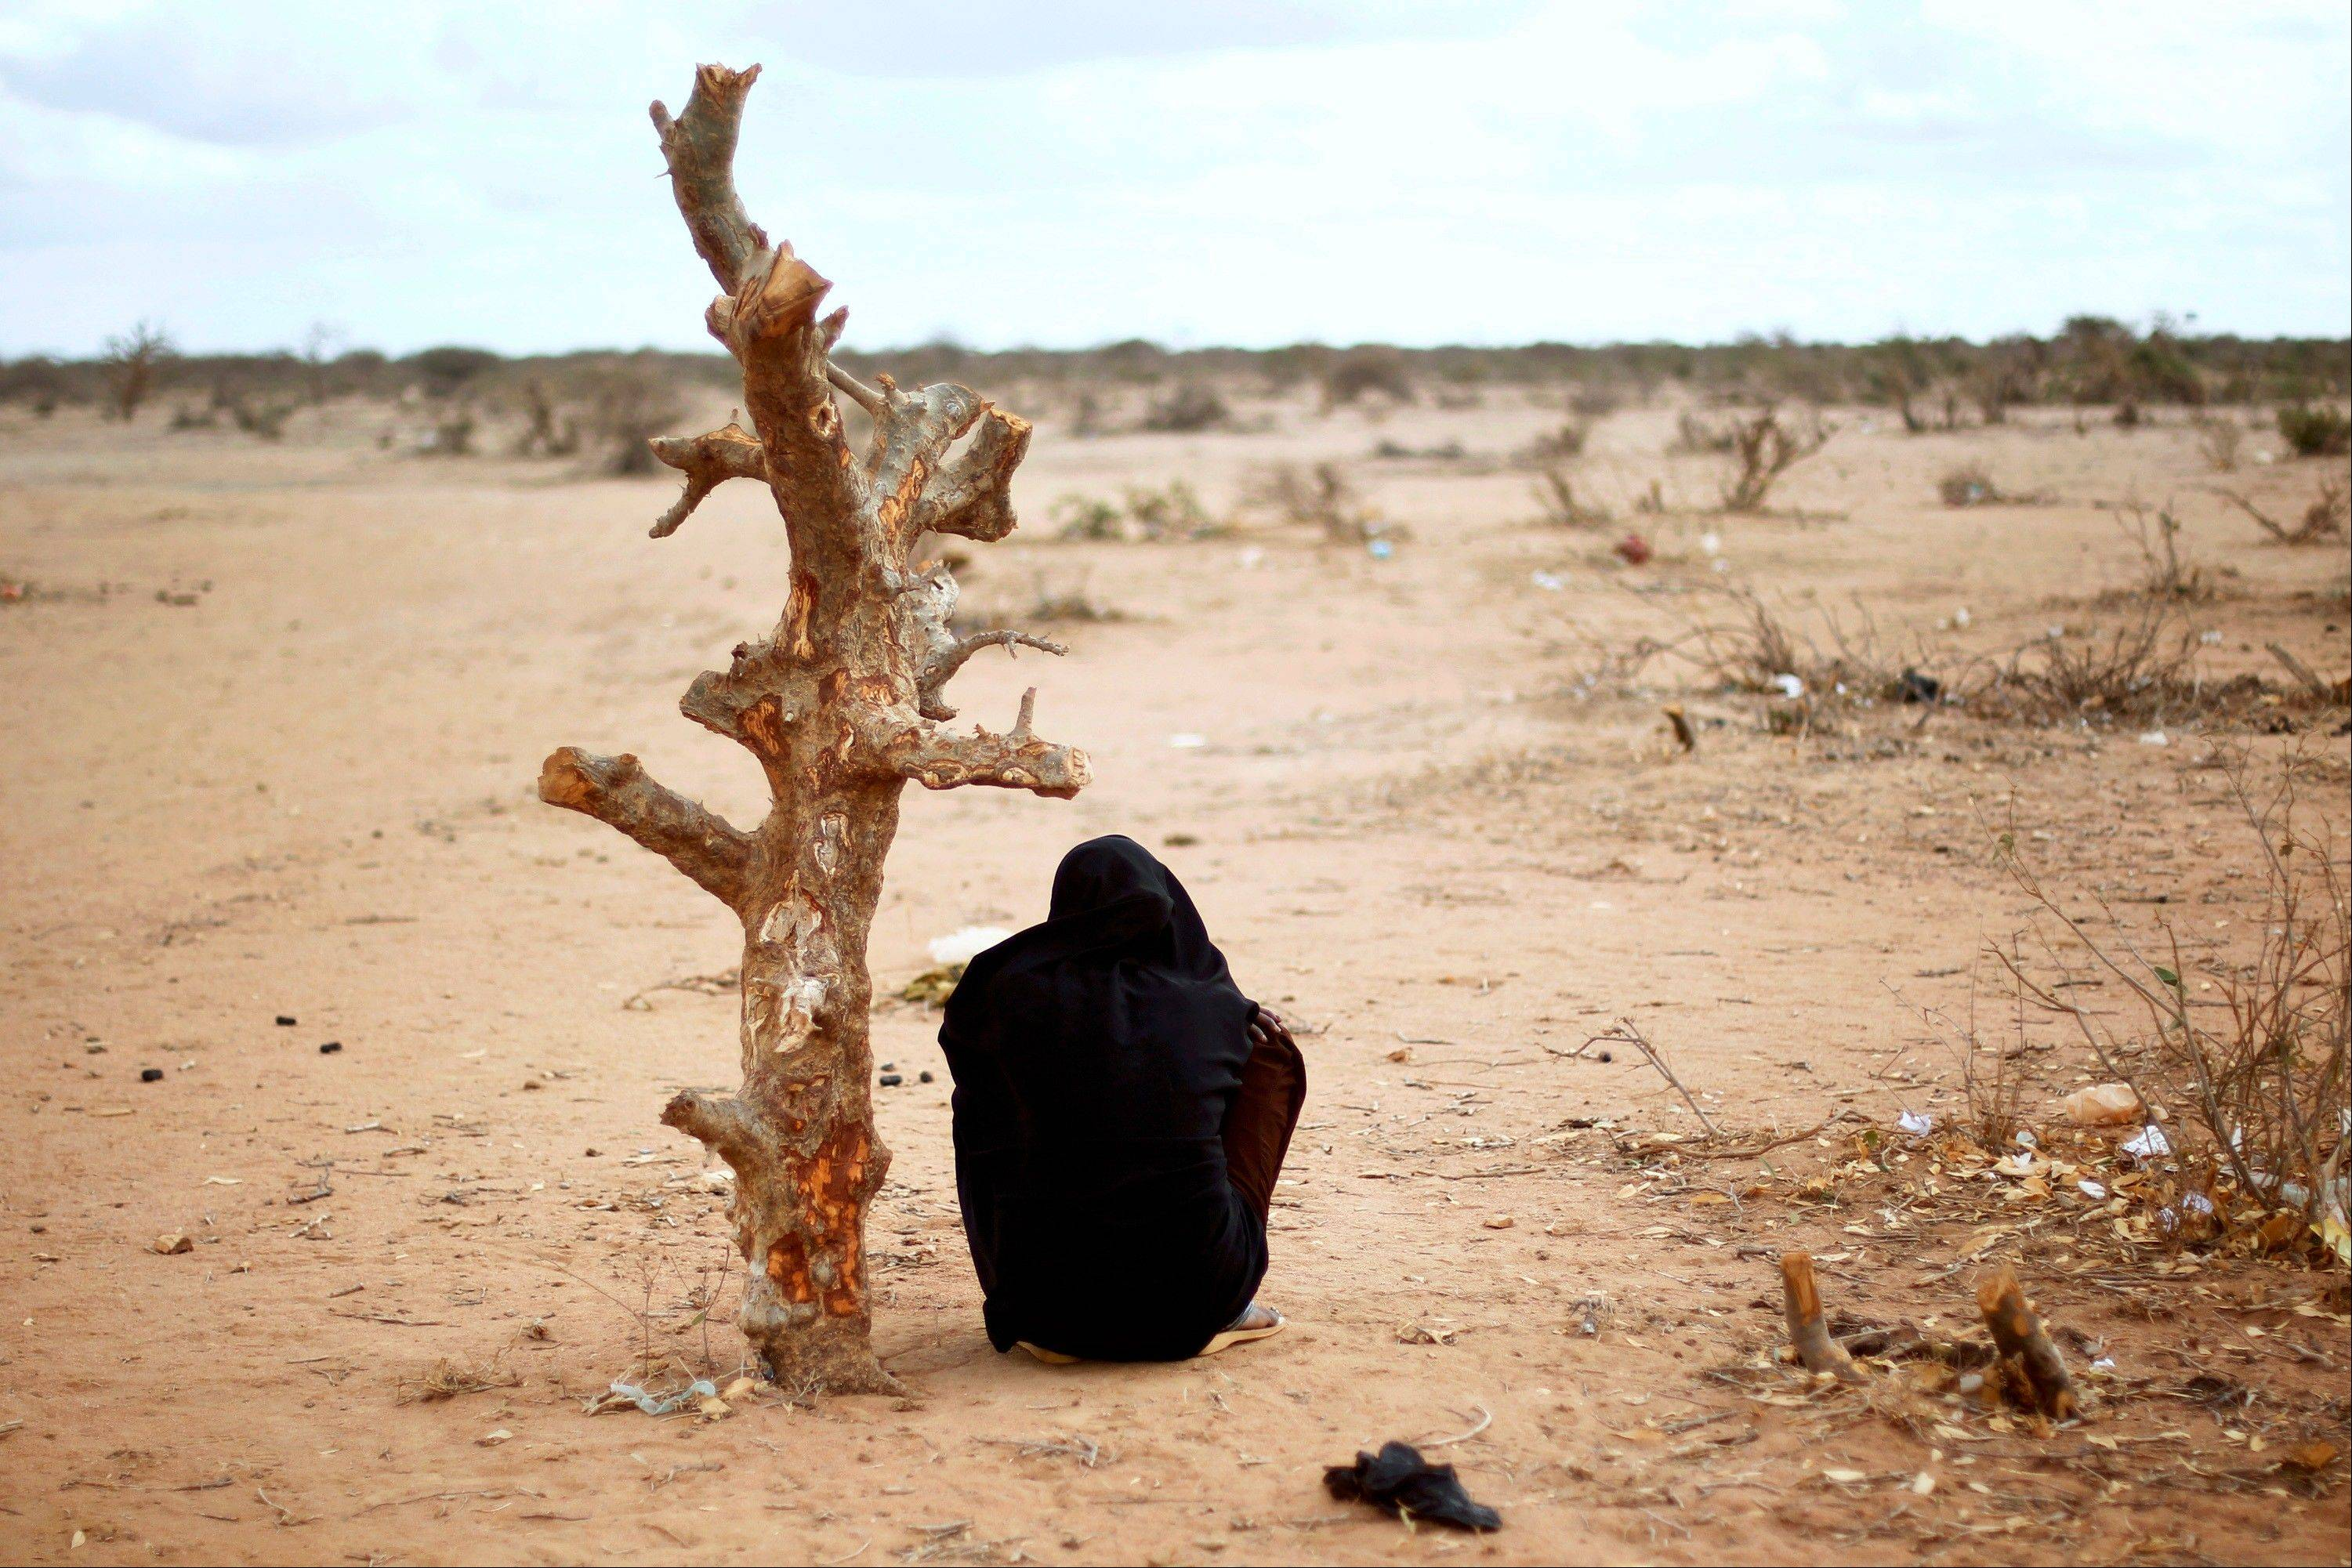 A pregnant Somali woman sits by a tree trunk at UNHCR's Ifo Extension camp outside Dadaab, eastern Kenya, 100 kms (60 miles) from the Somali border. U.S. President Barack Obama has approved $105 million for humanitarian efforts in the Horn of Africa to combat worsening drought and famine. The drought and famine in the Horn of Africa has killed more than 29,000 children under the age of 5 in the last 90 days in southern Somalia alone, according to U.S. estimates. The U.N. says 640,000 Somali children are acutely malnourished, suggesting the death toll of small children will rise.